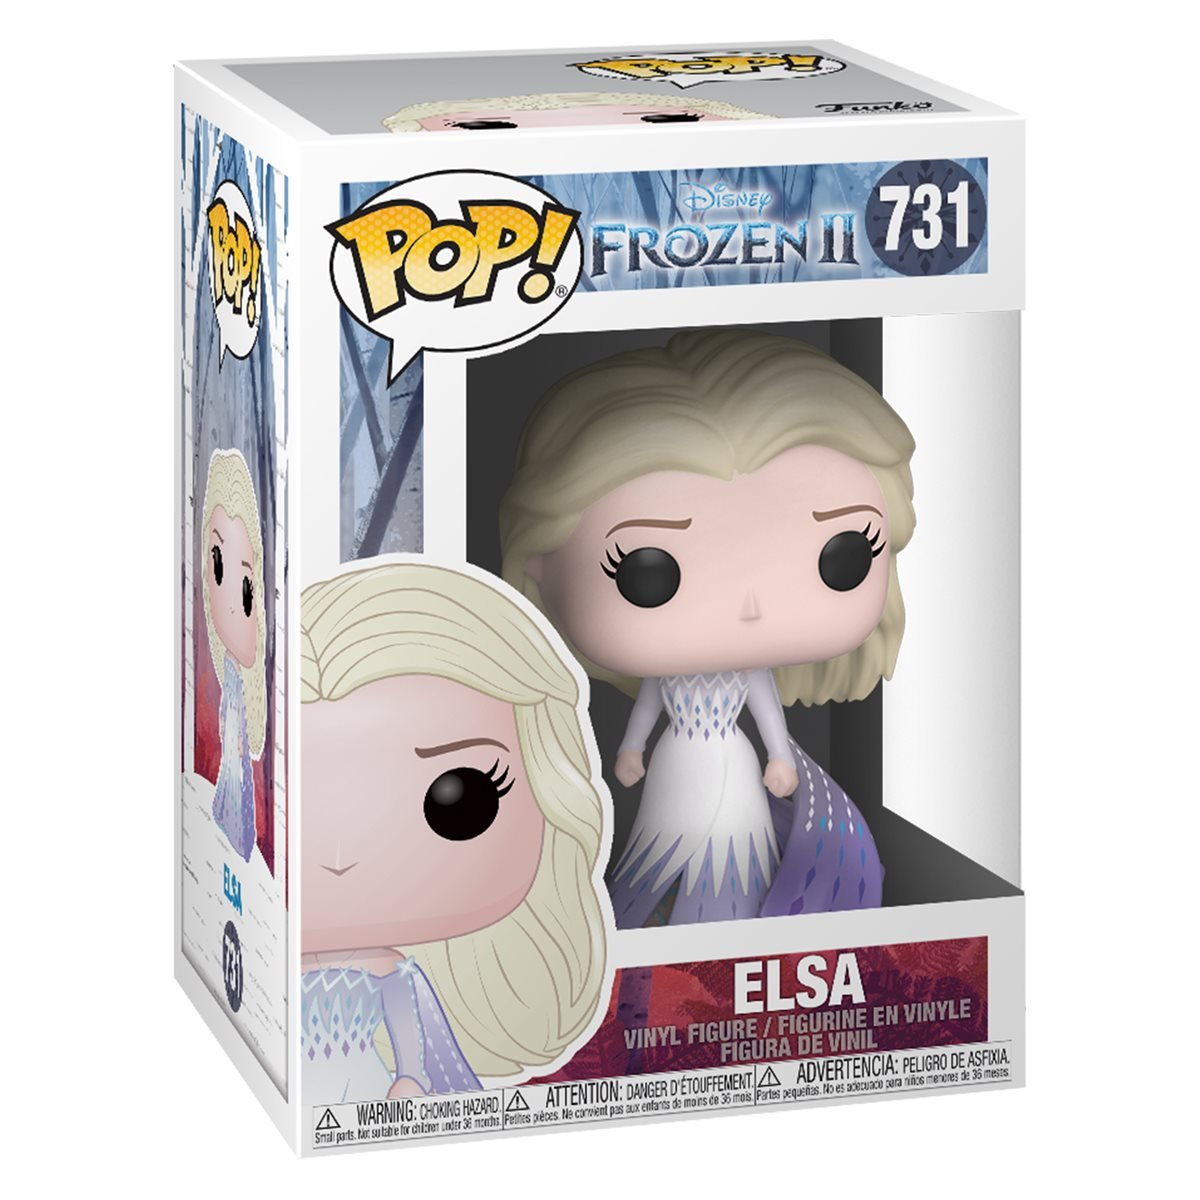 Frozen 2 Elsa Epilogue Dress Pop Vinyl Figure